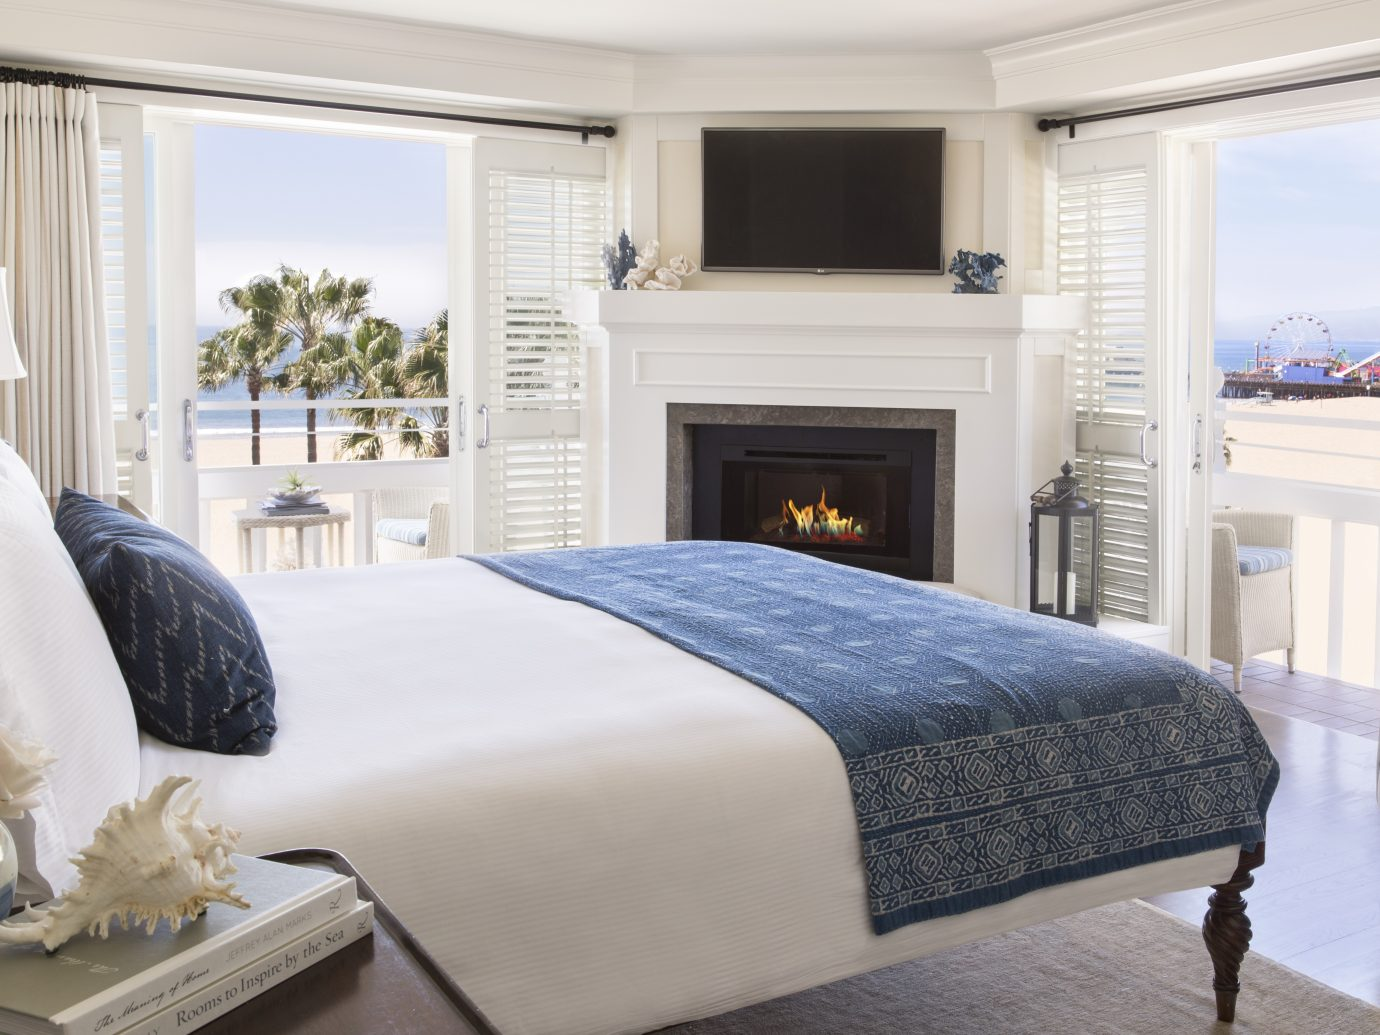 Ocean view guestroom at Shutters on the Beach, Santa Monica, CA